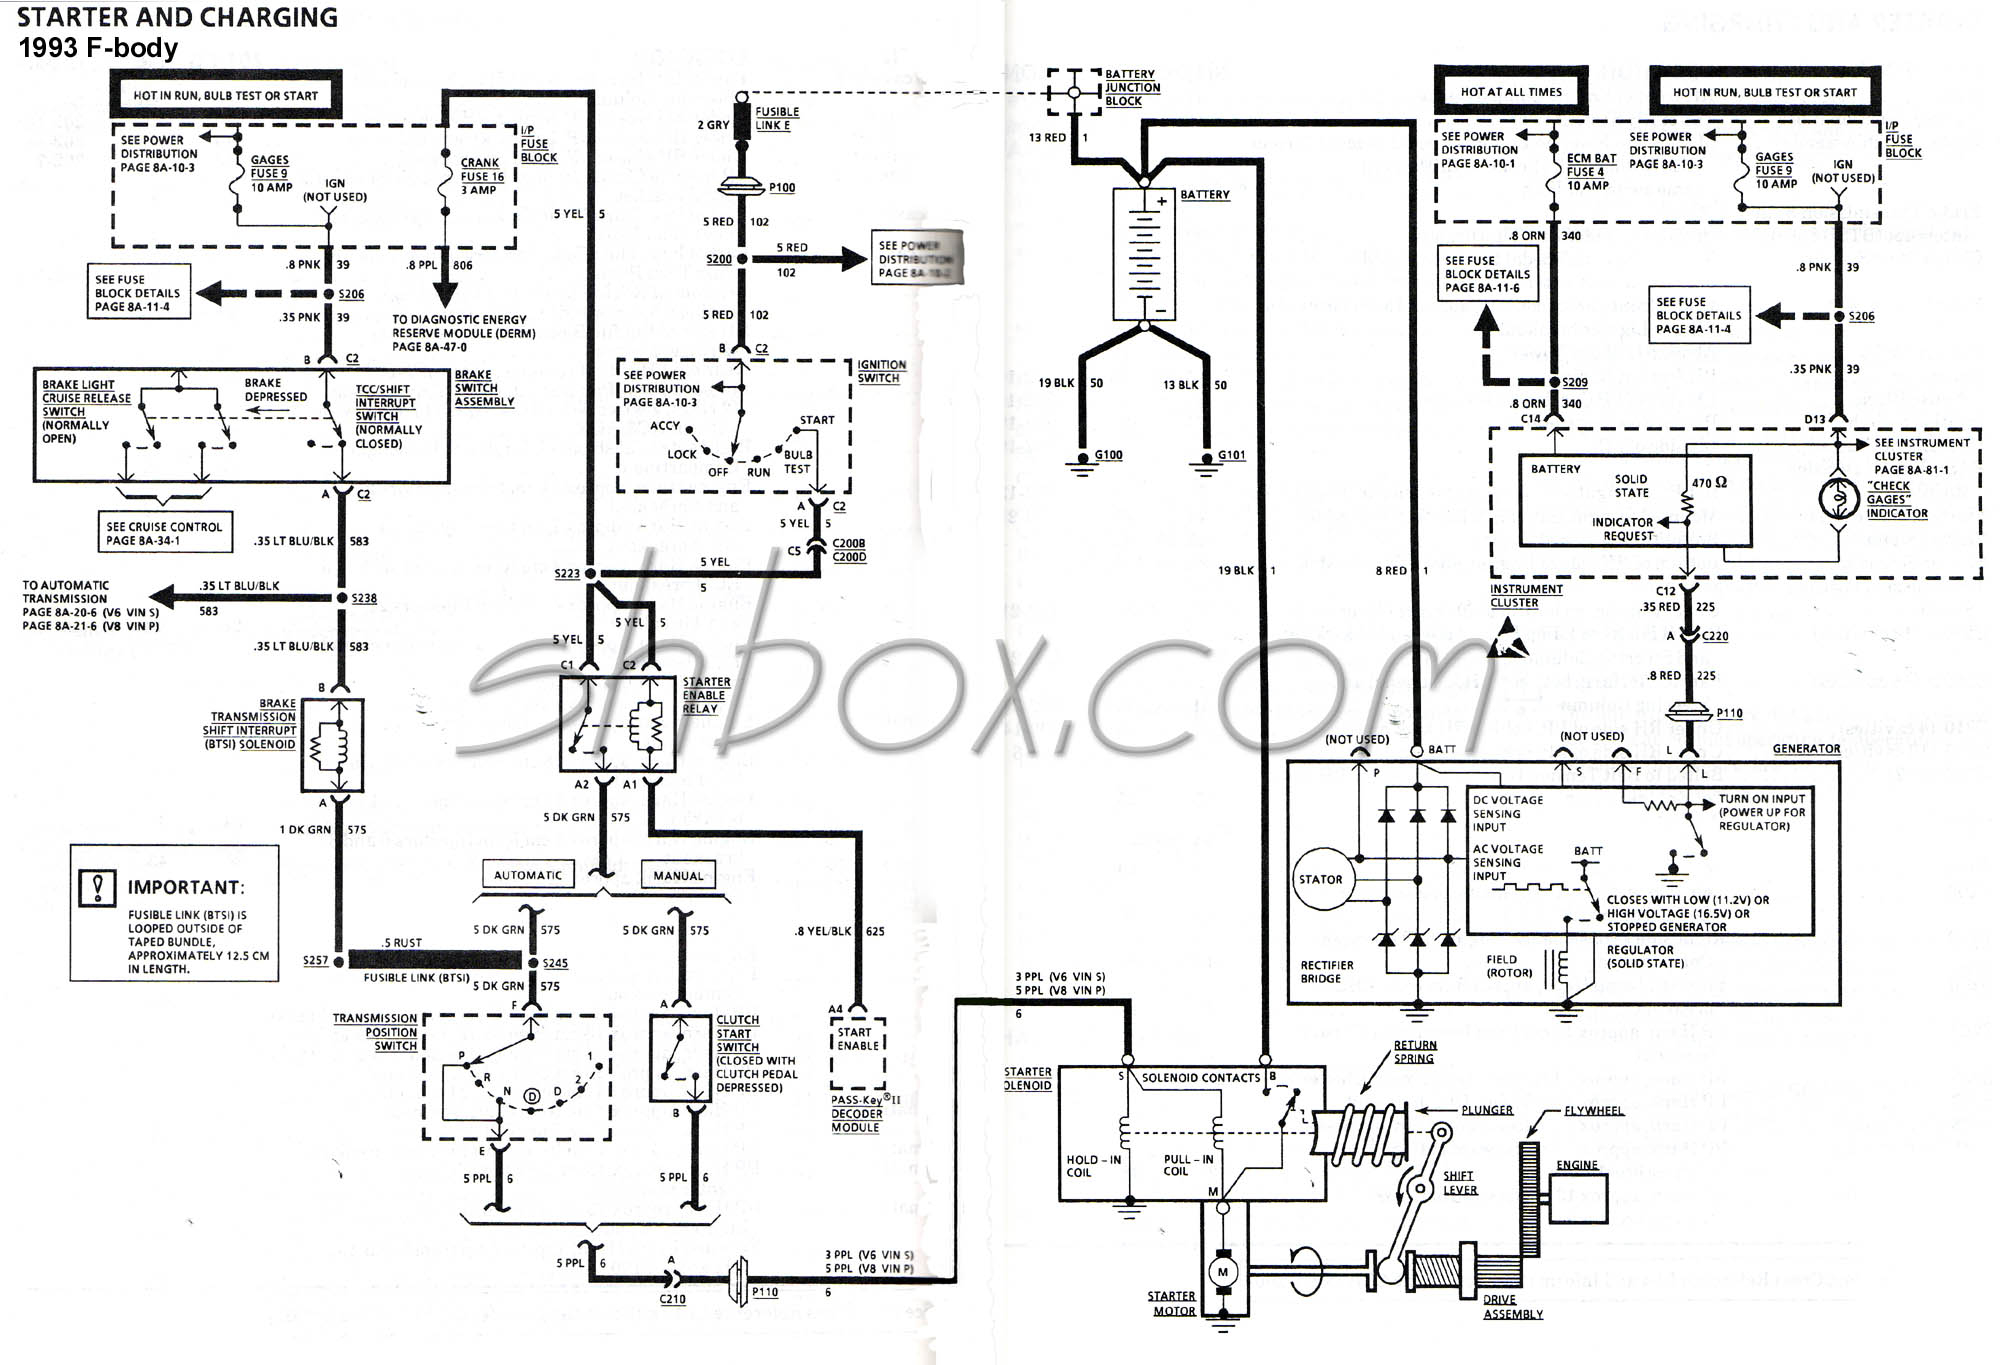 Passkey 3 Bypass Diagram